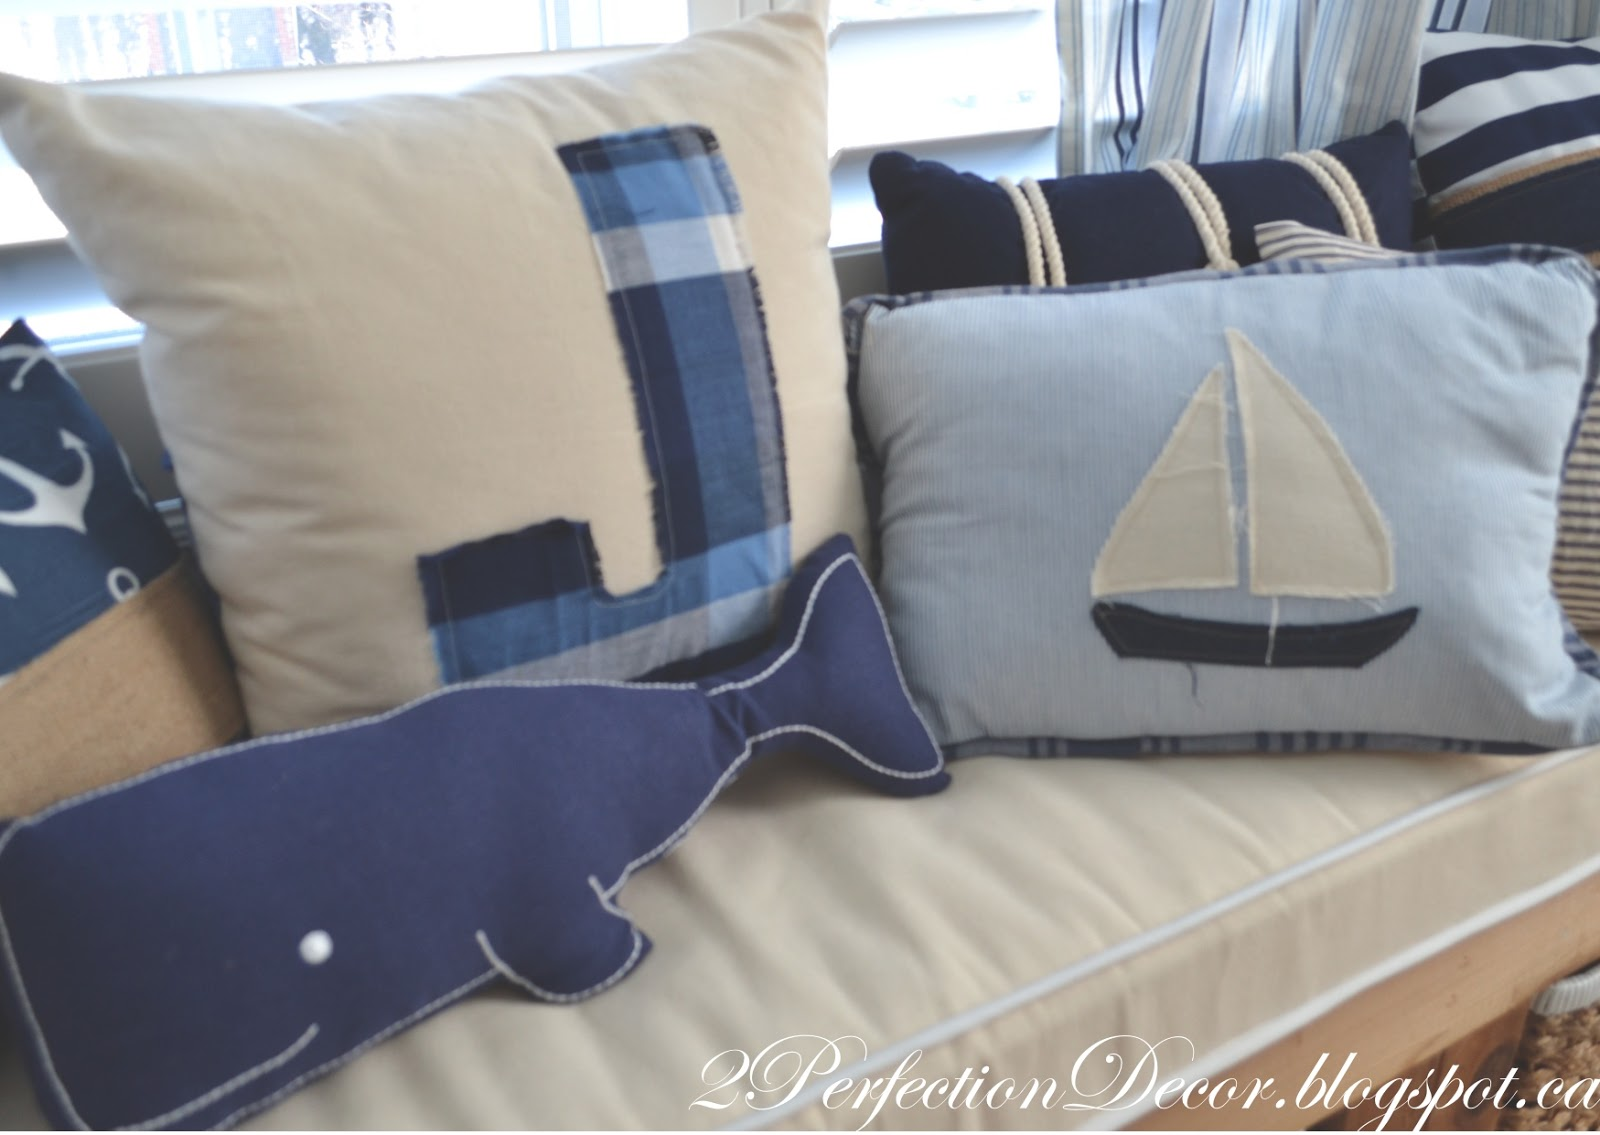 Nautical curtain rod finials - To Keep Up With The Nautical Theme I Got These Great Curtain Rod Finials From Land Of Nod They Are A Rope Style Which Ties In Really With The Rest Of The